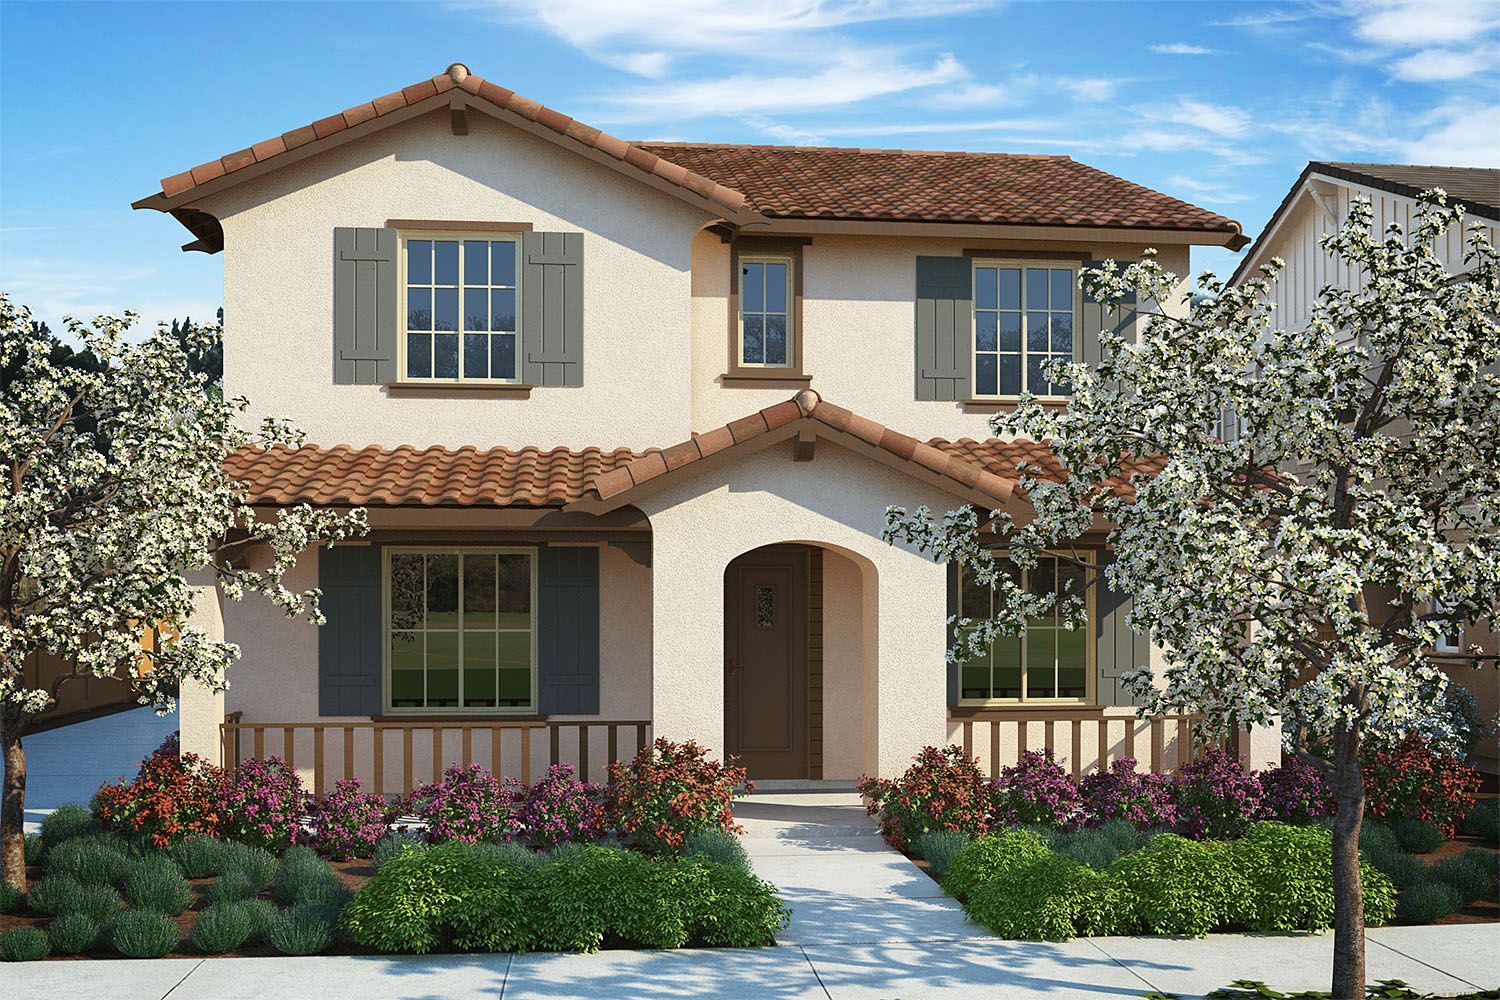 New Homes Development In Gilroy Ca